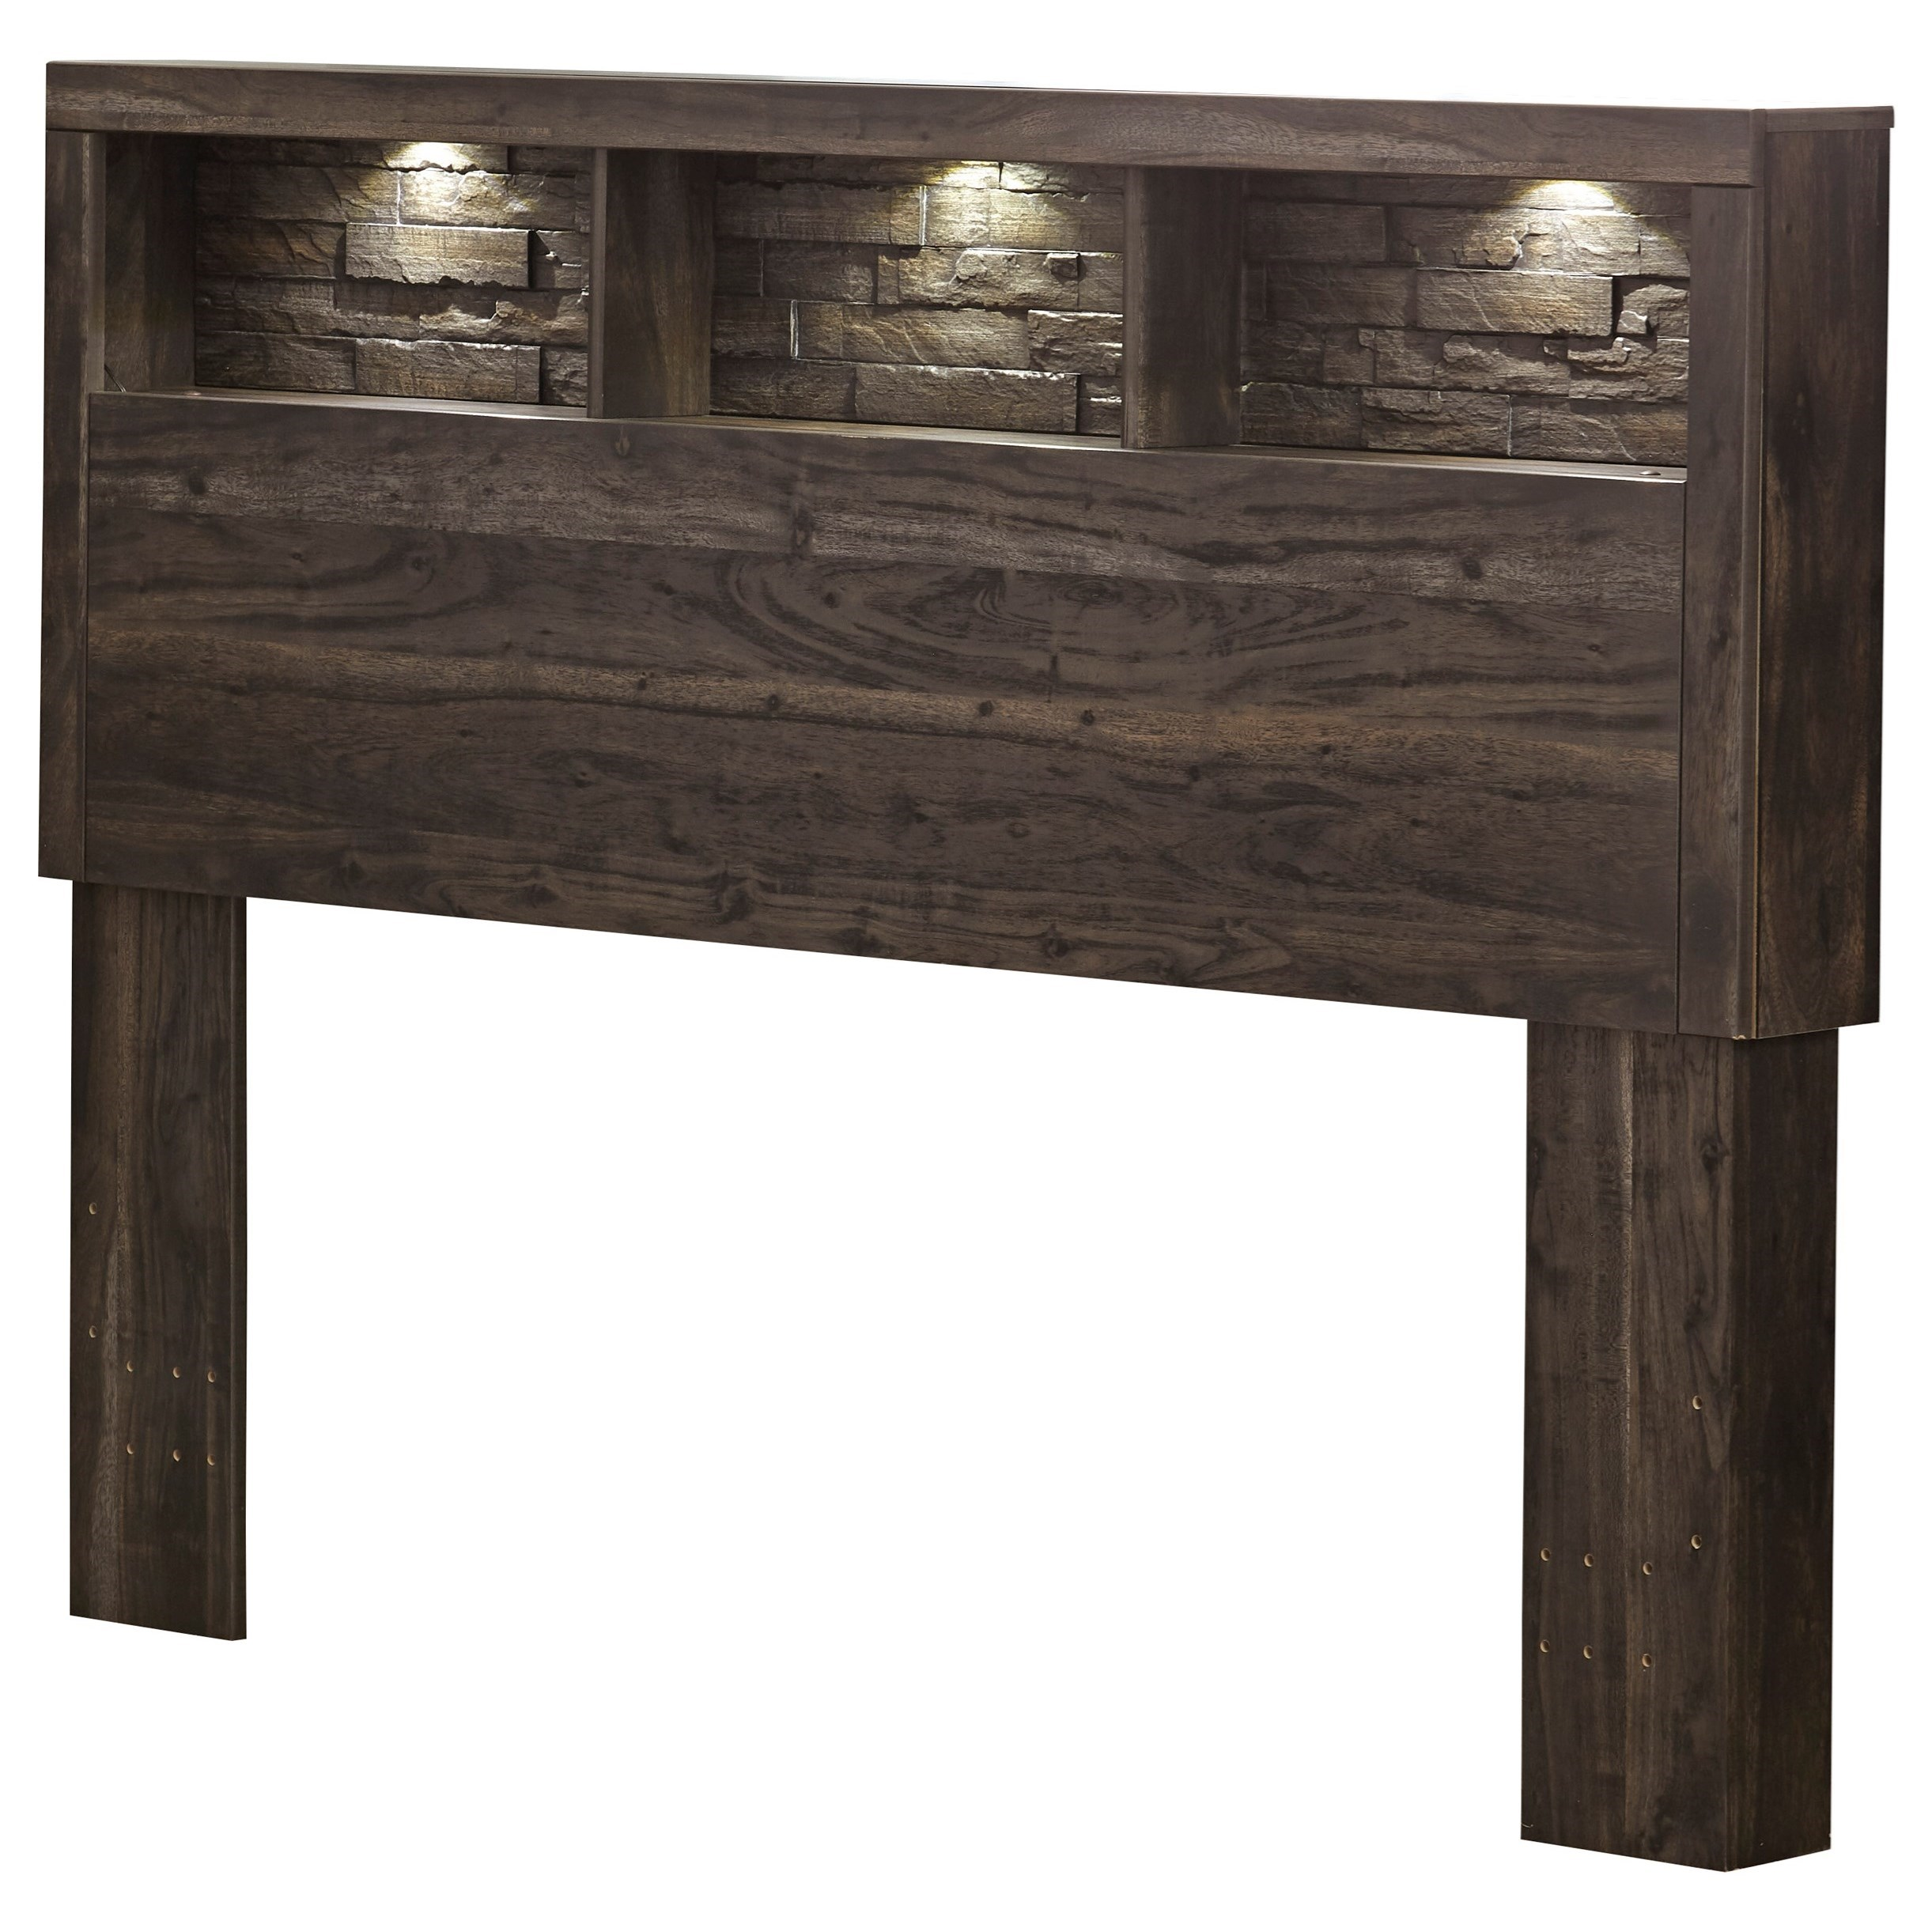 Vay Bay Queen Bookcase Headboard by Benchcraft at Value City Furniture